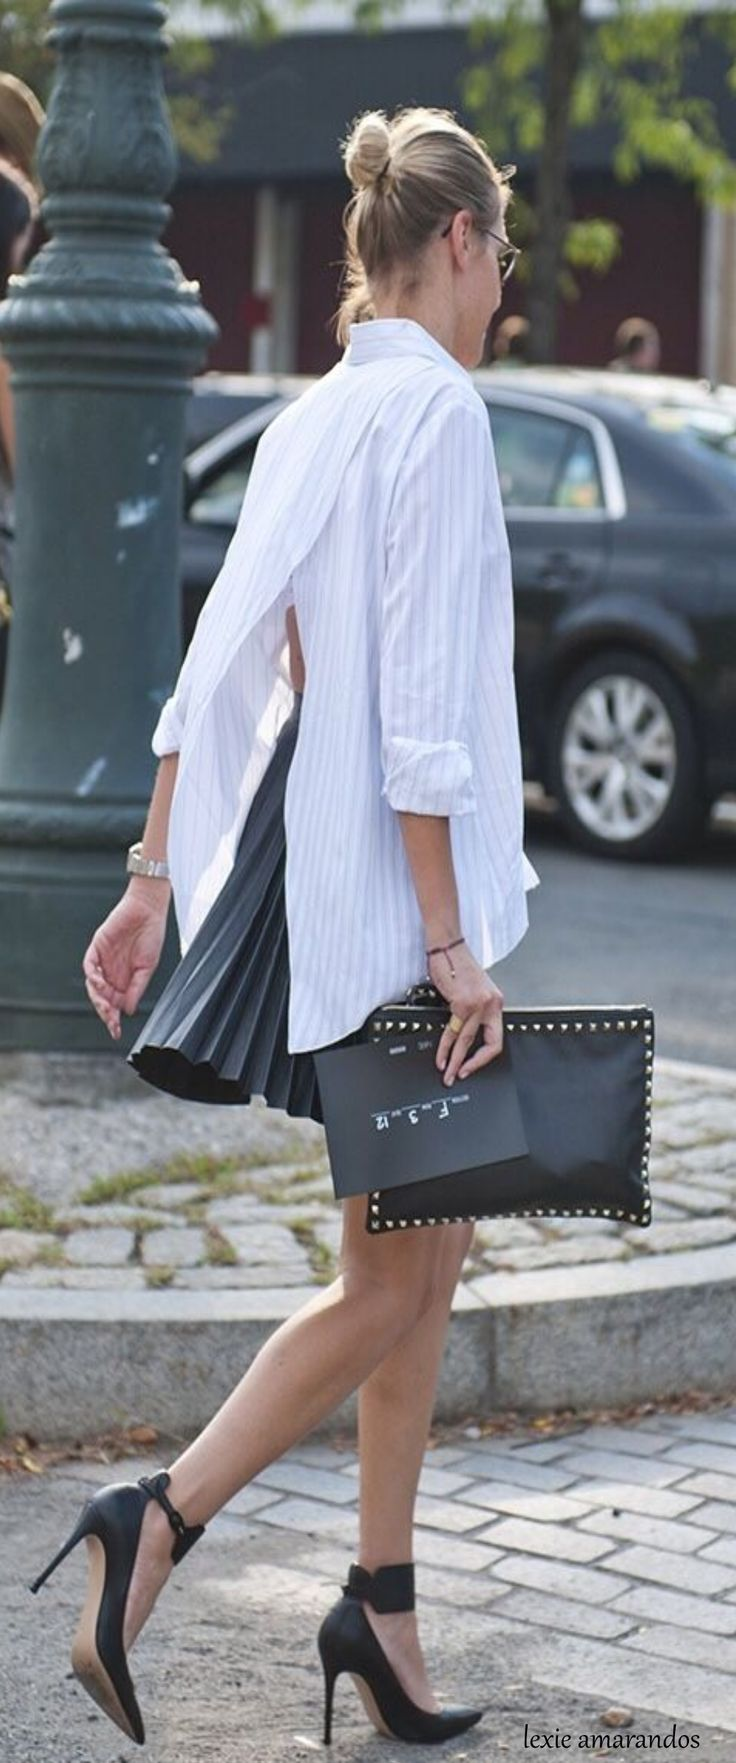 Oversized pinstripe mans shirt with open back and pinch pleat short skirt and heels so cute.